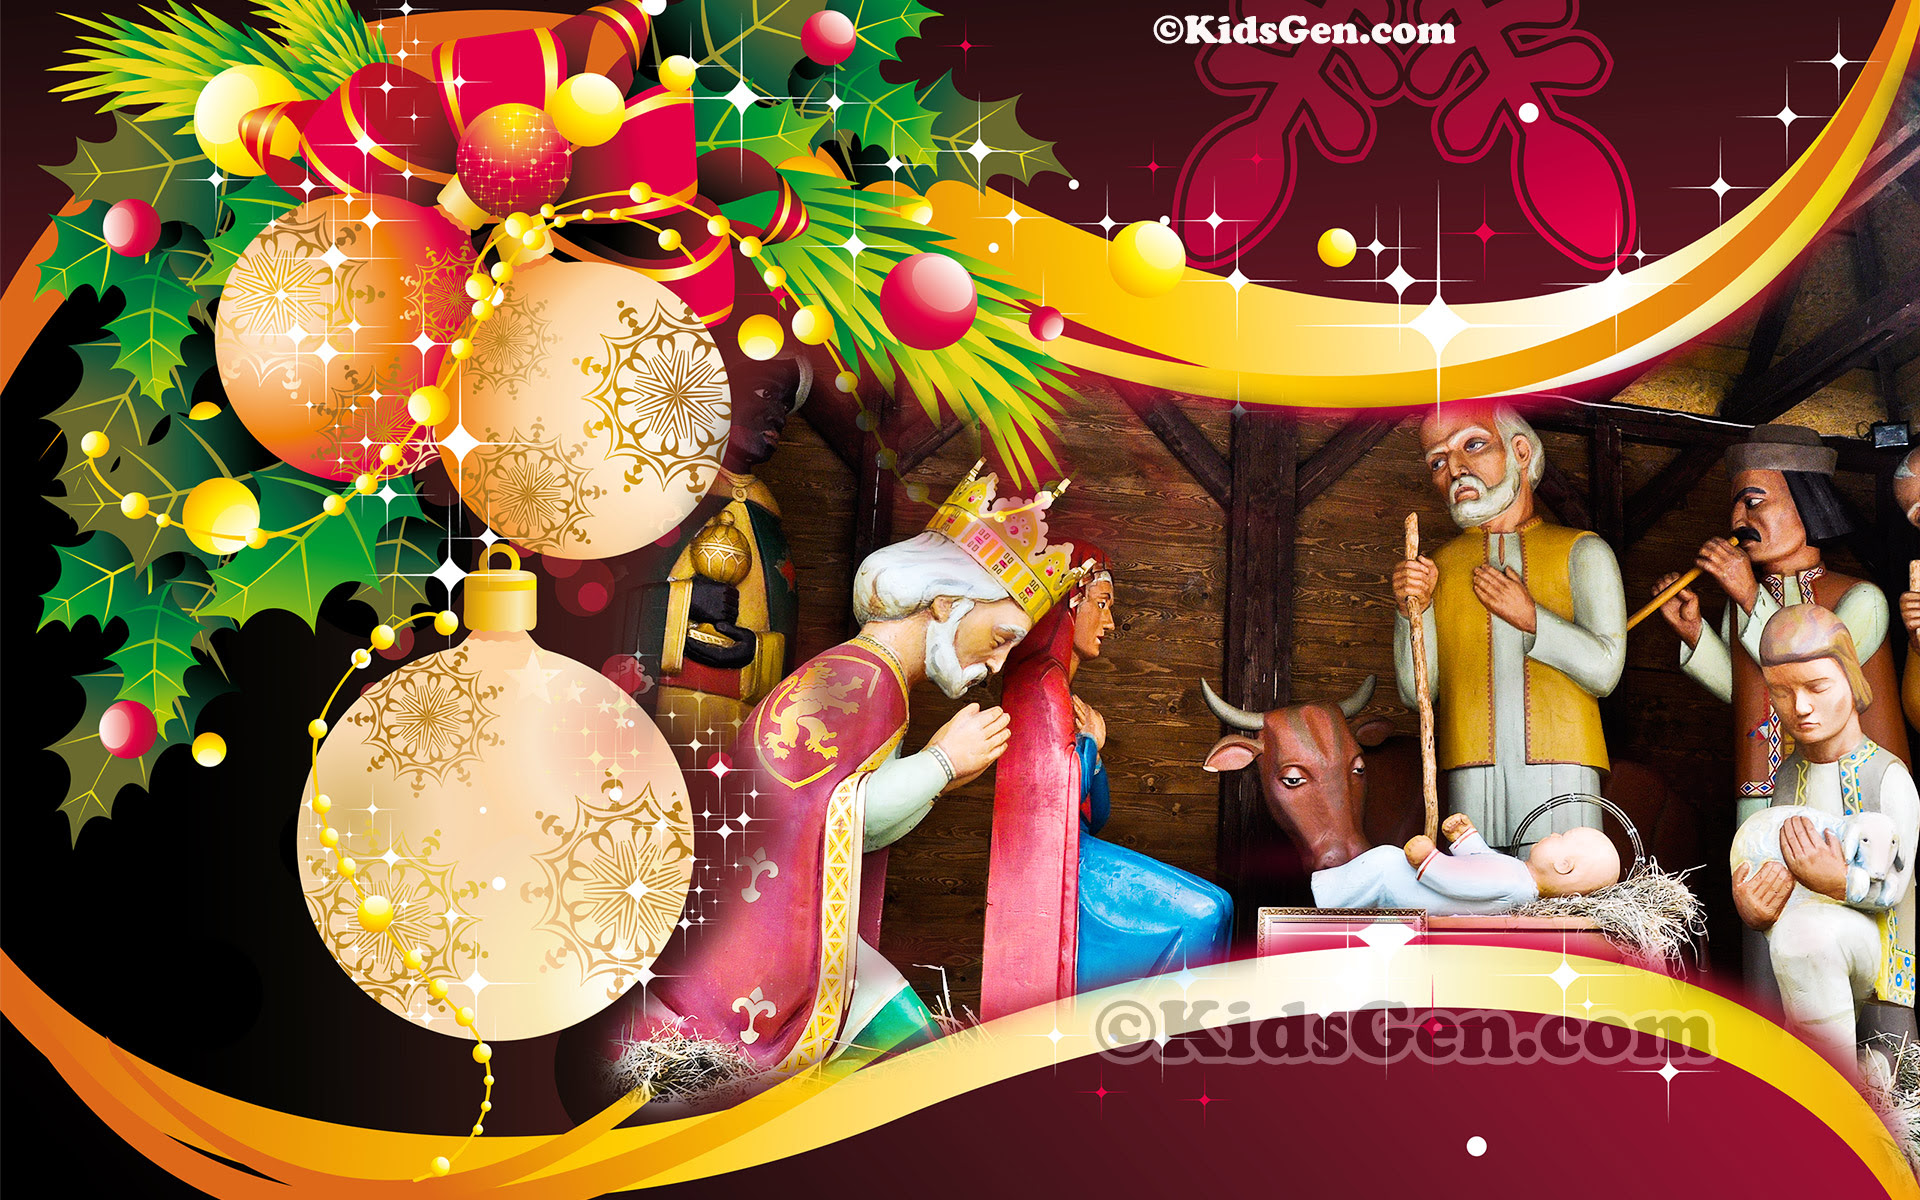 100 Epic Best Merry Christmas Images With Baby Jesus Hd